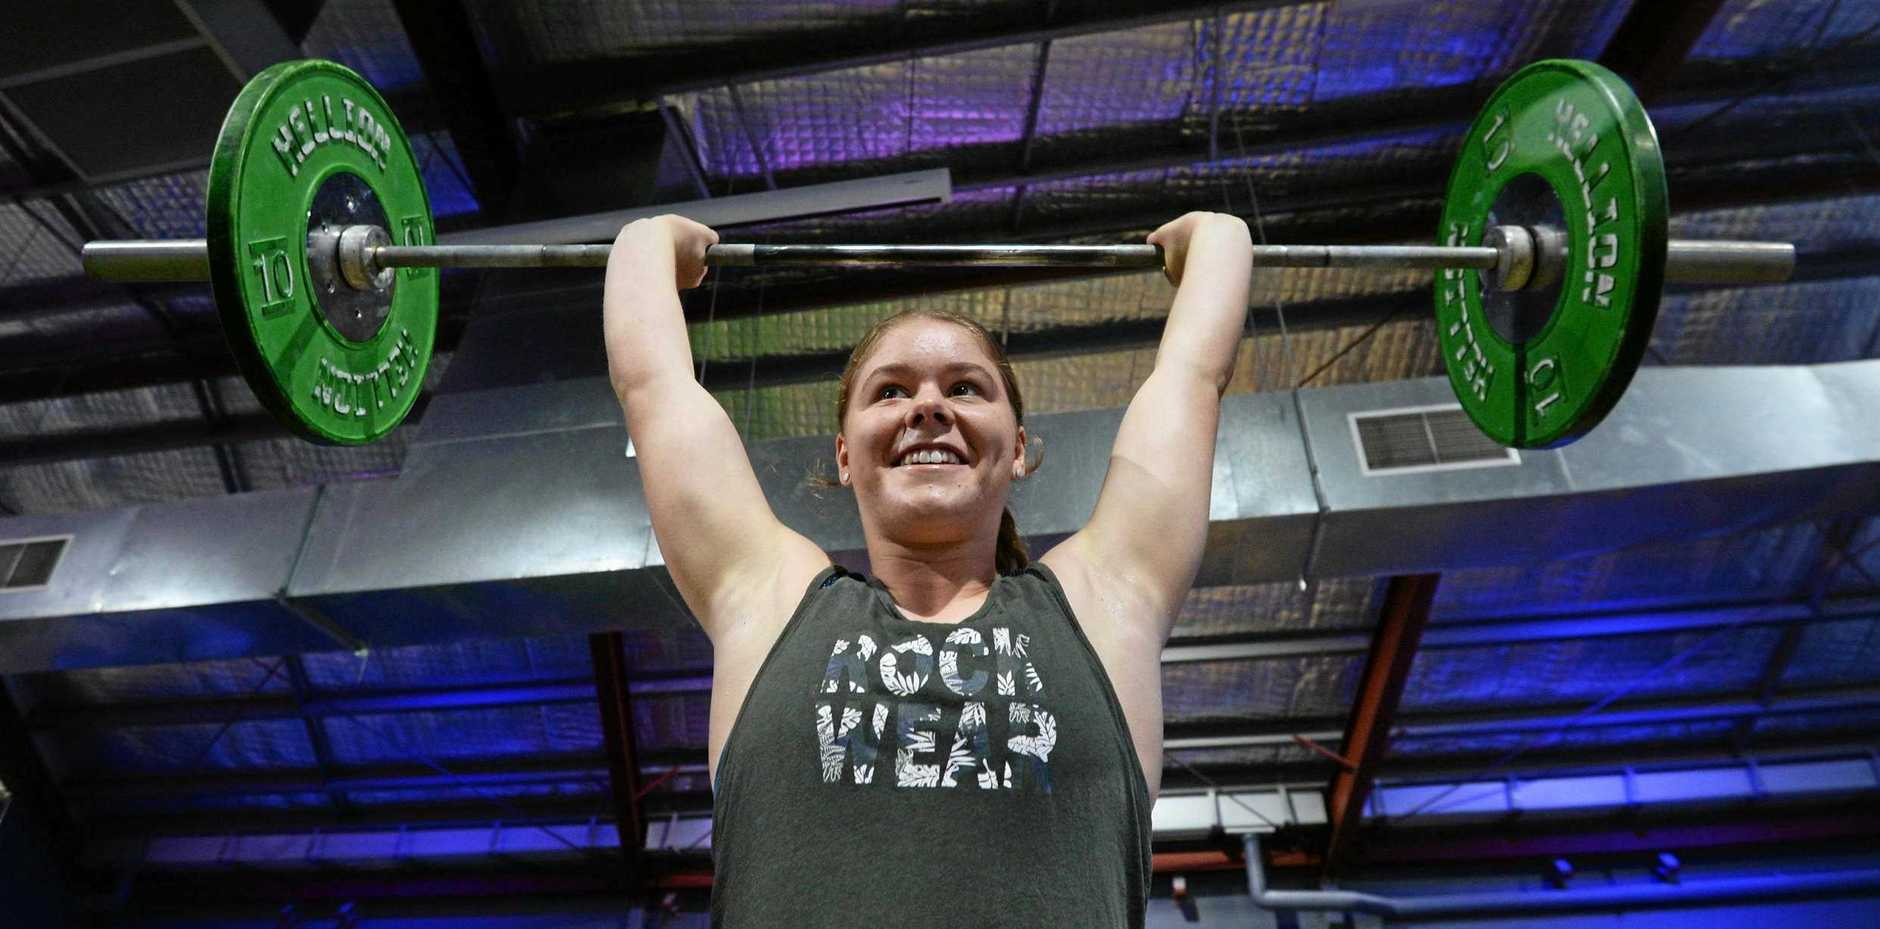 POWERHOUSE: Tai Gwynne will be among the crossfit athletes competing in the VidaFit Super Series.